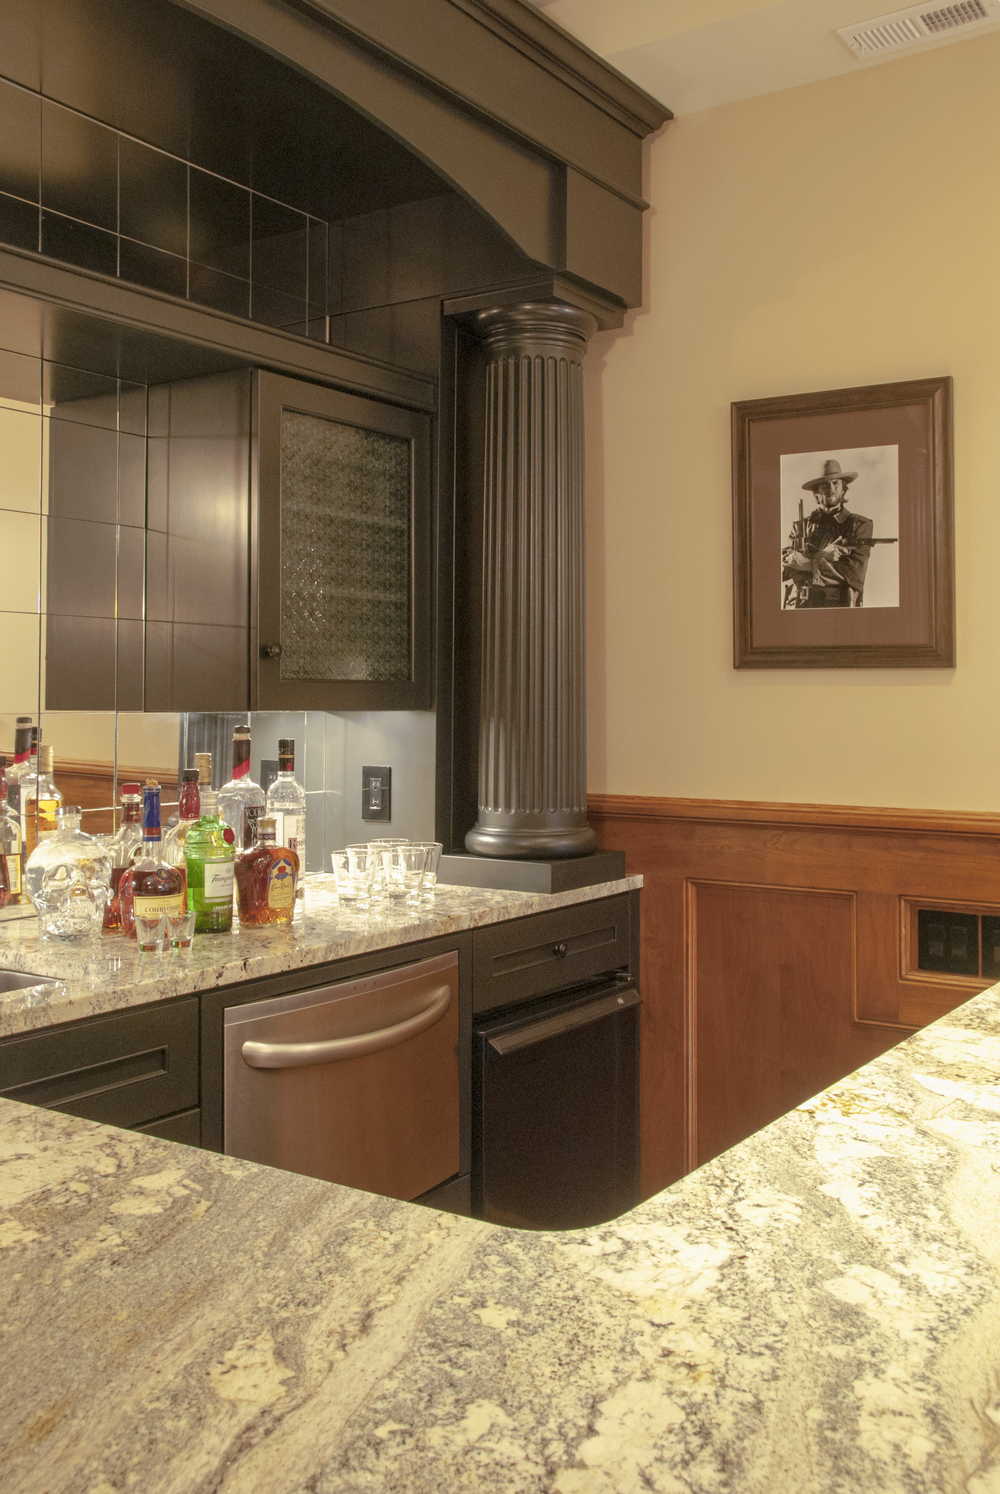 The bar also features a drawer dishwasher and beverage fridge.